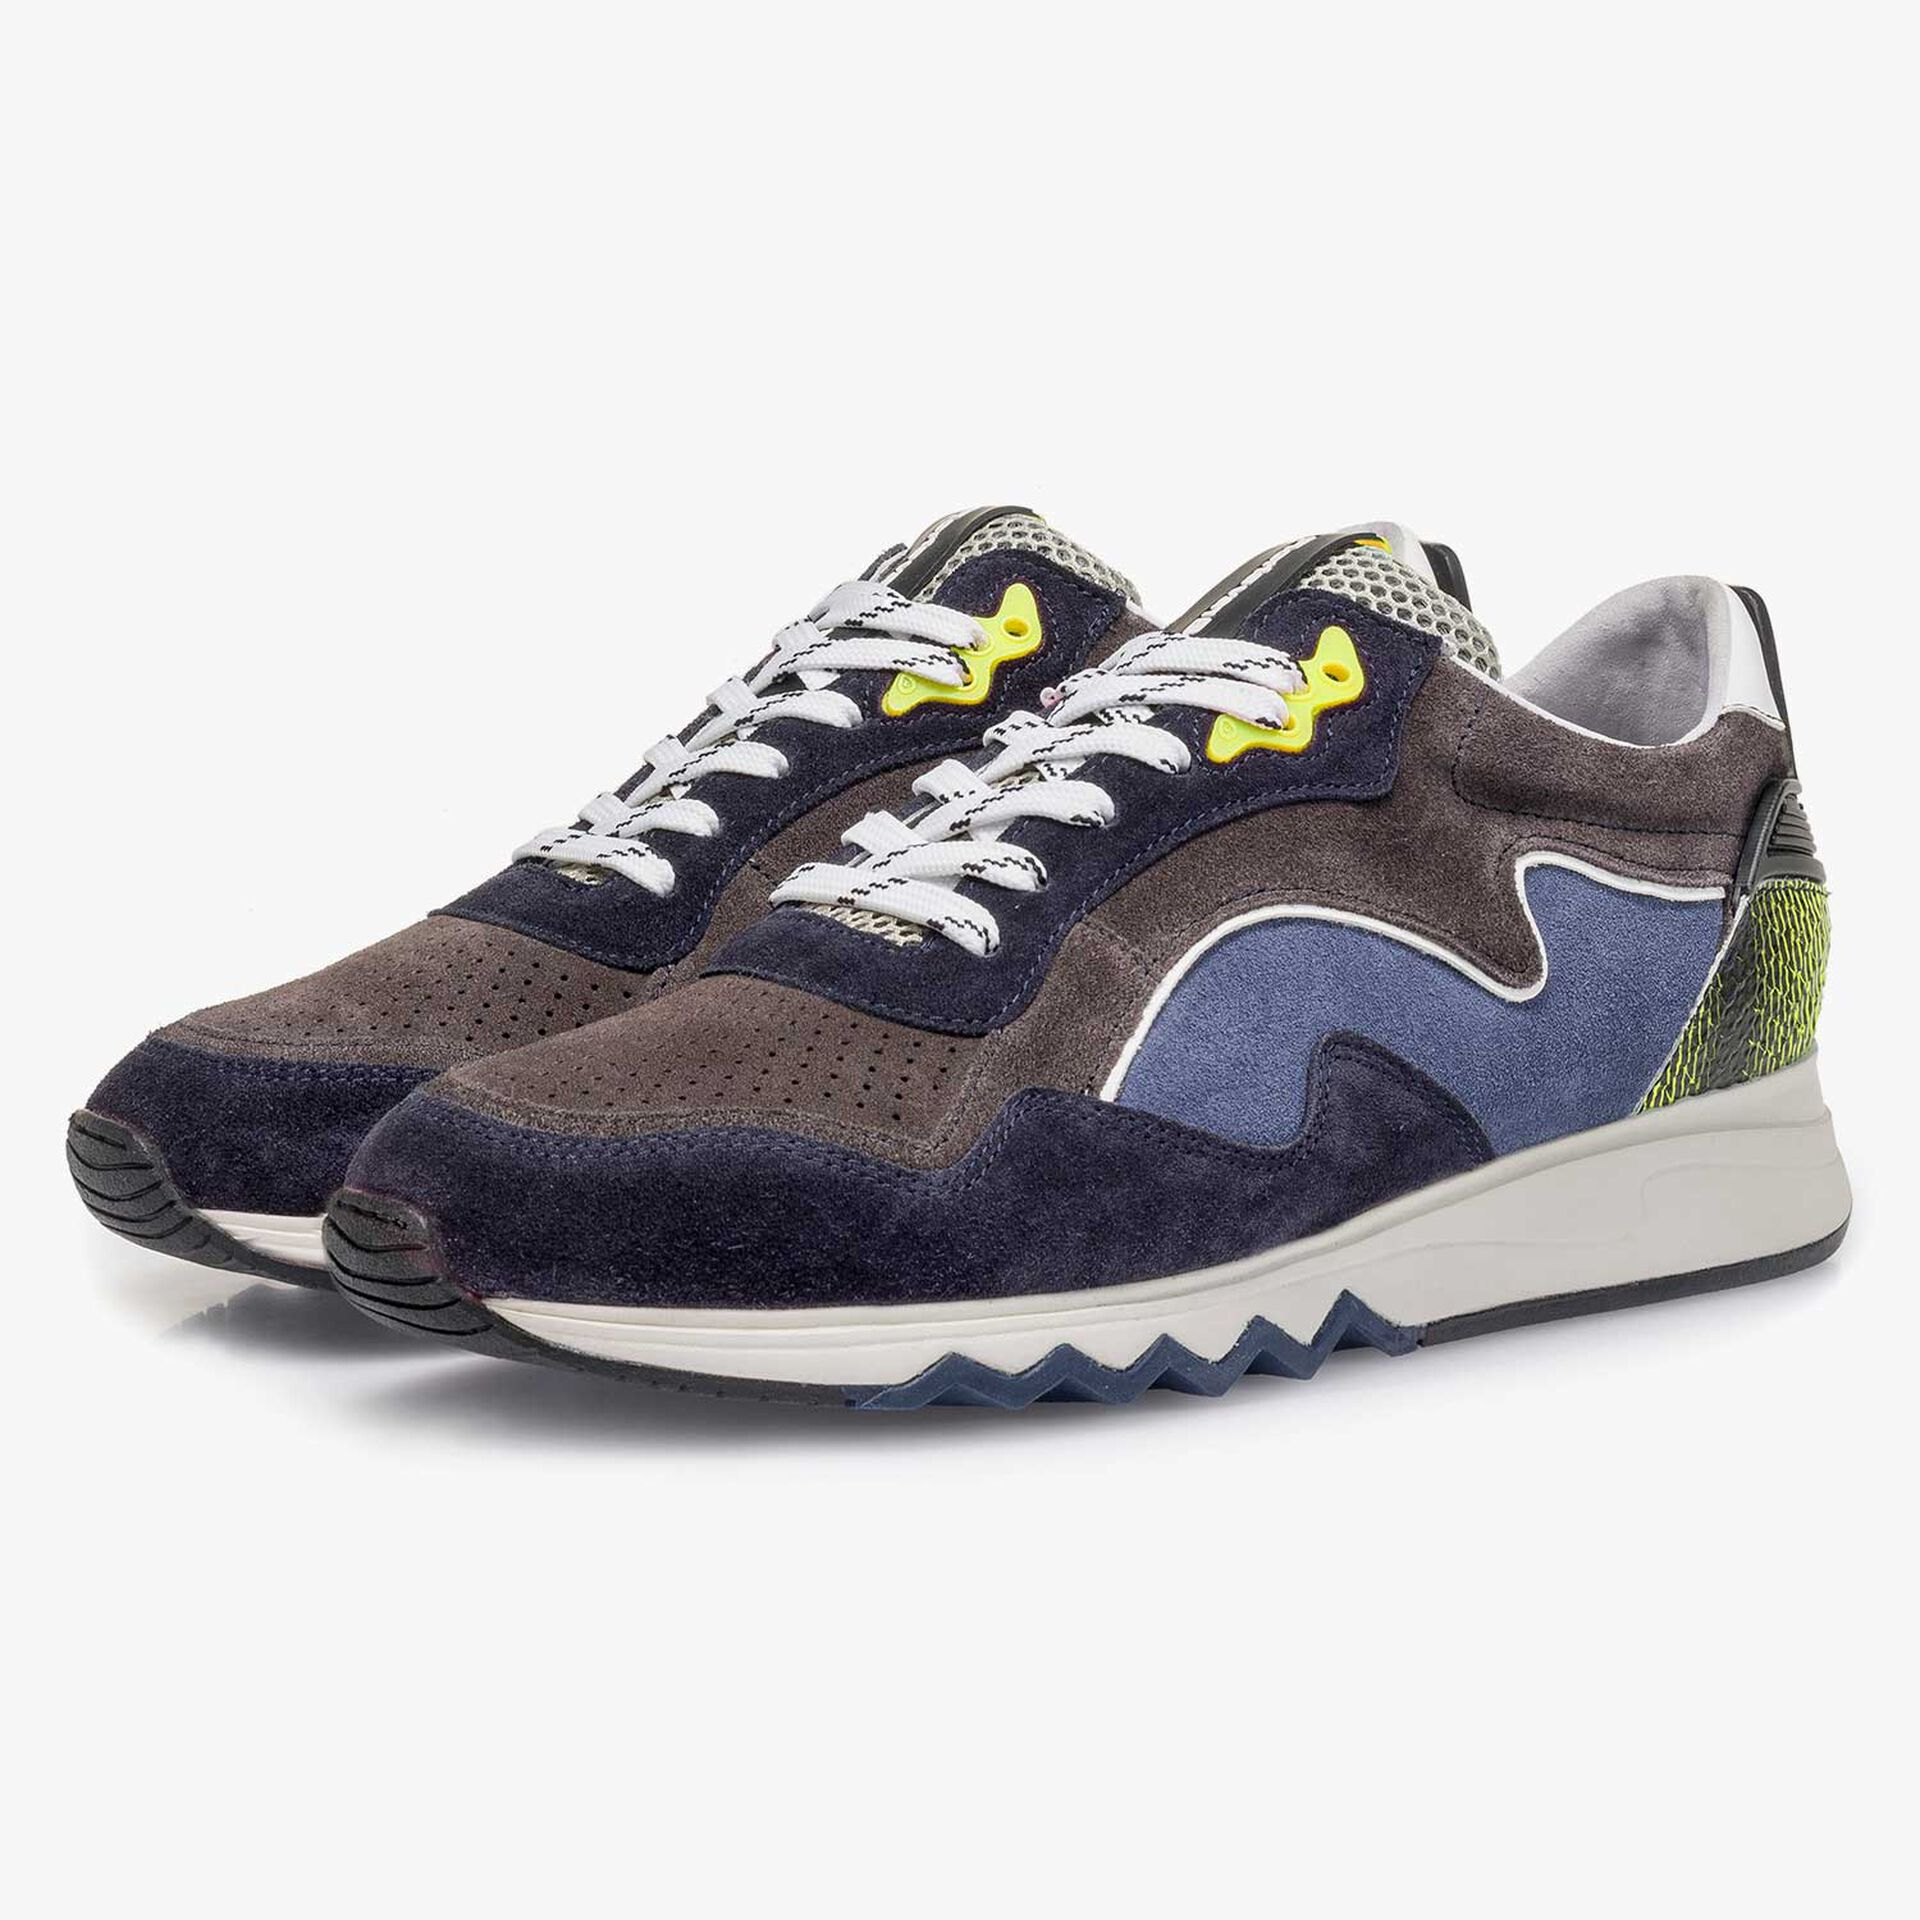 Yellow-blue suede leather sneaker